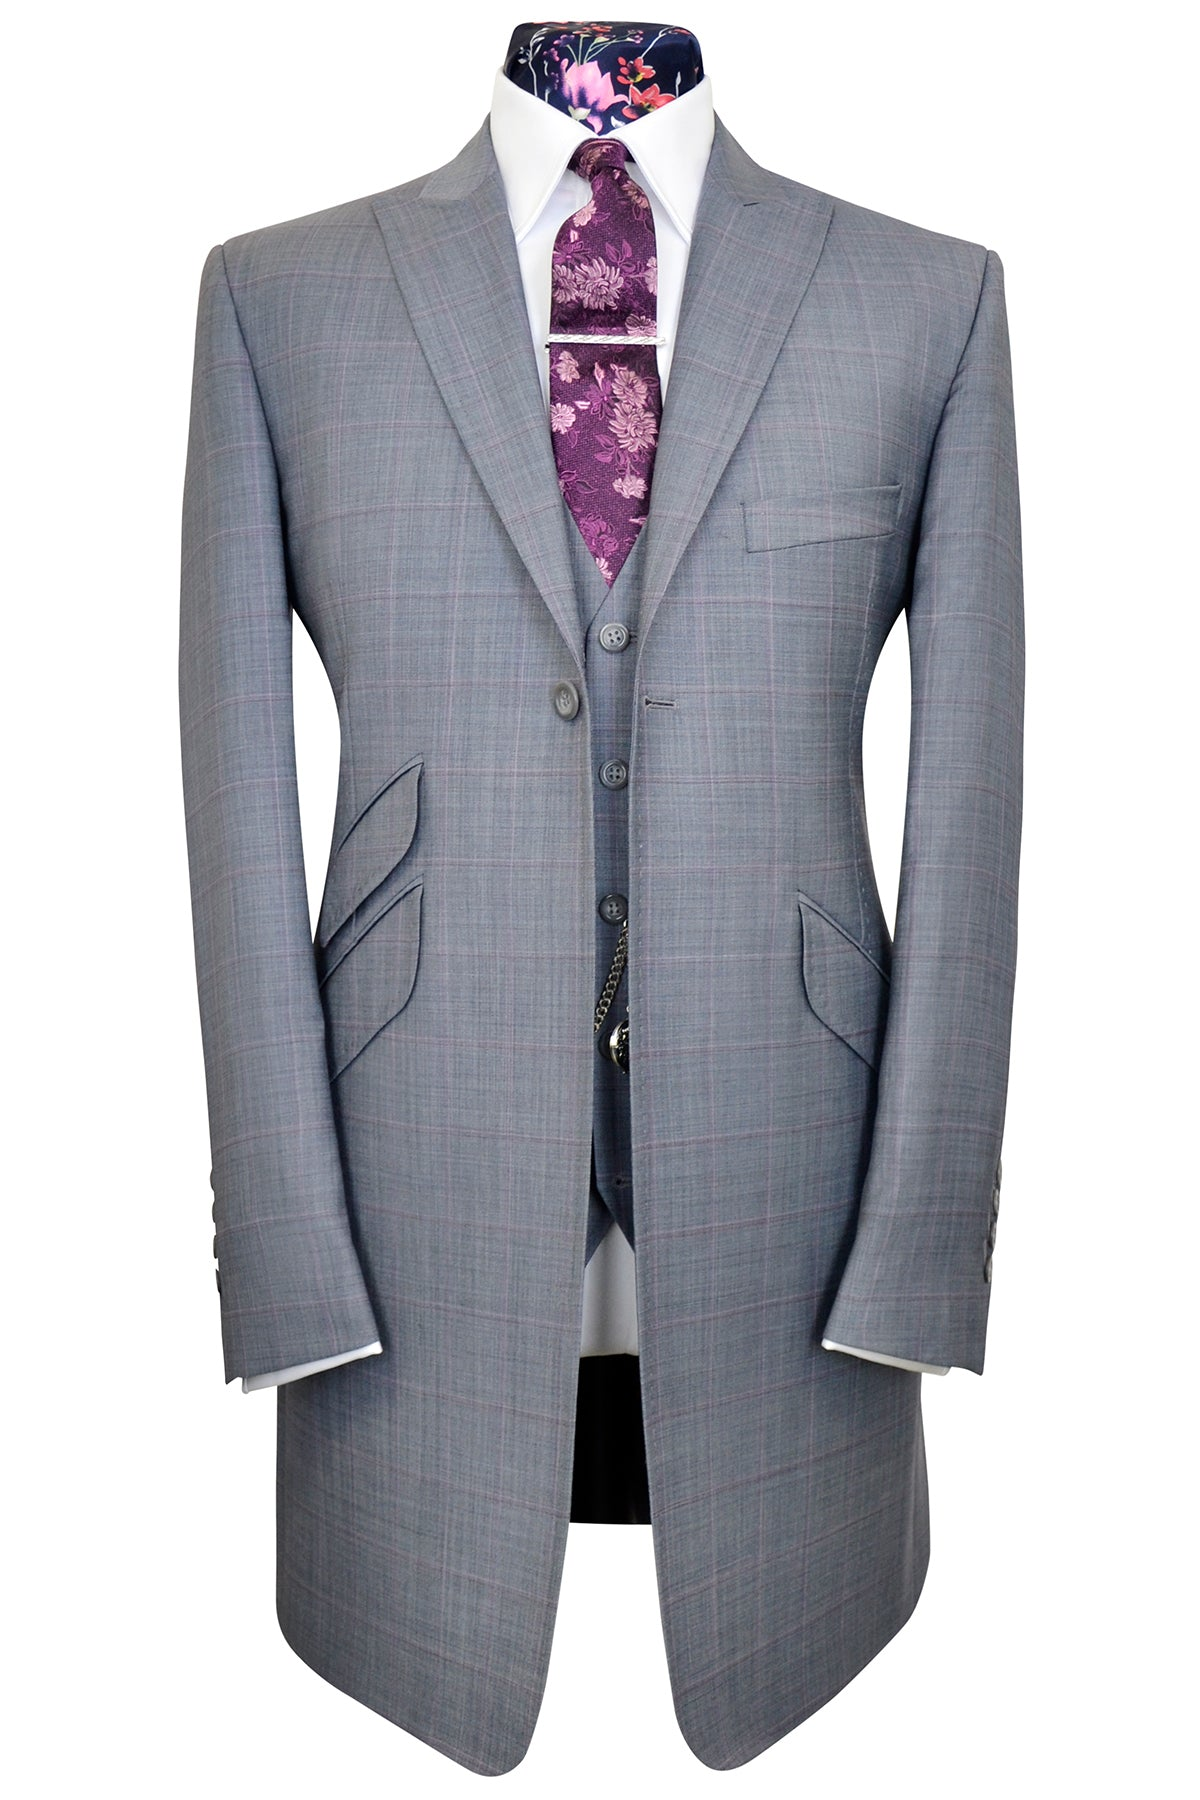 The Hollingsworth Dove Grey Frock Coat Suit with Pink and ...